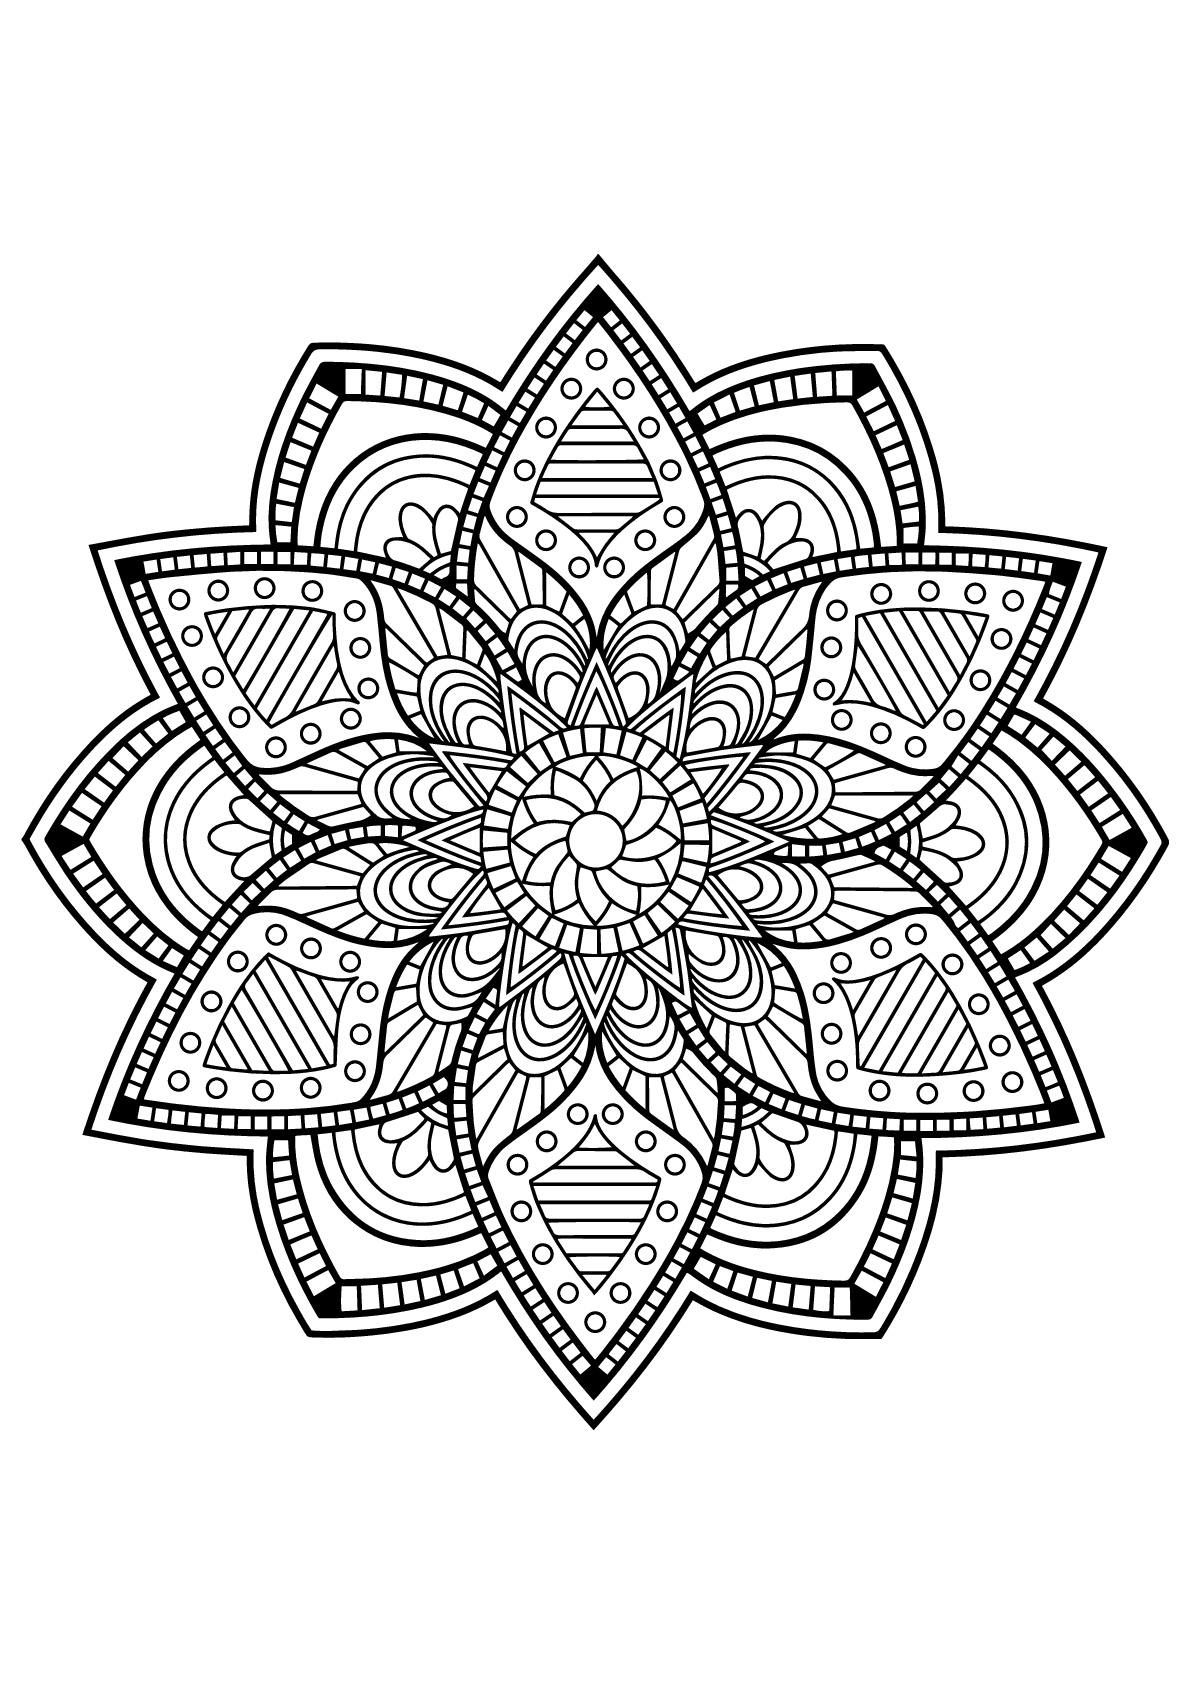 free printable mandalas to color for adults mandala from free coloring books for adults 6 mandalas to printable color free adults mandalas for